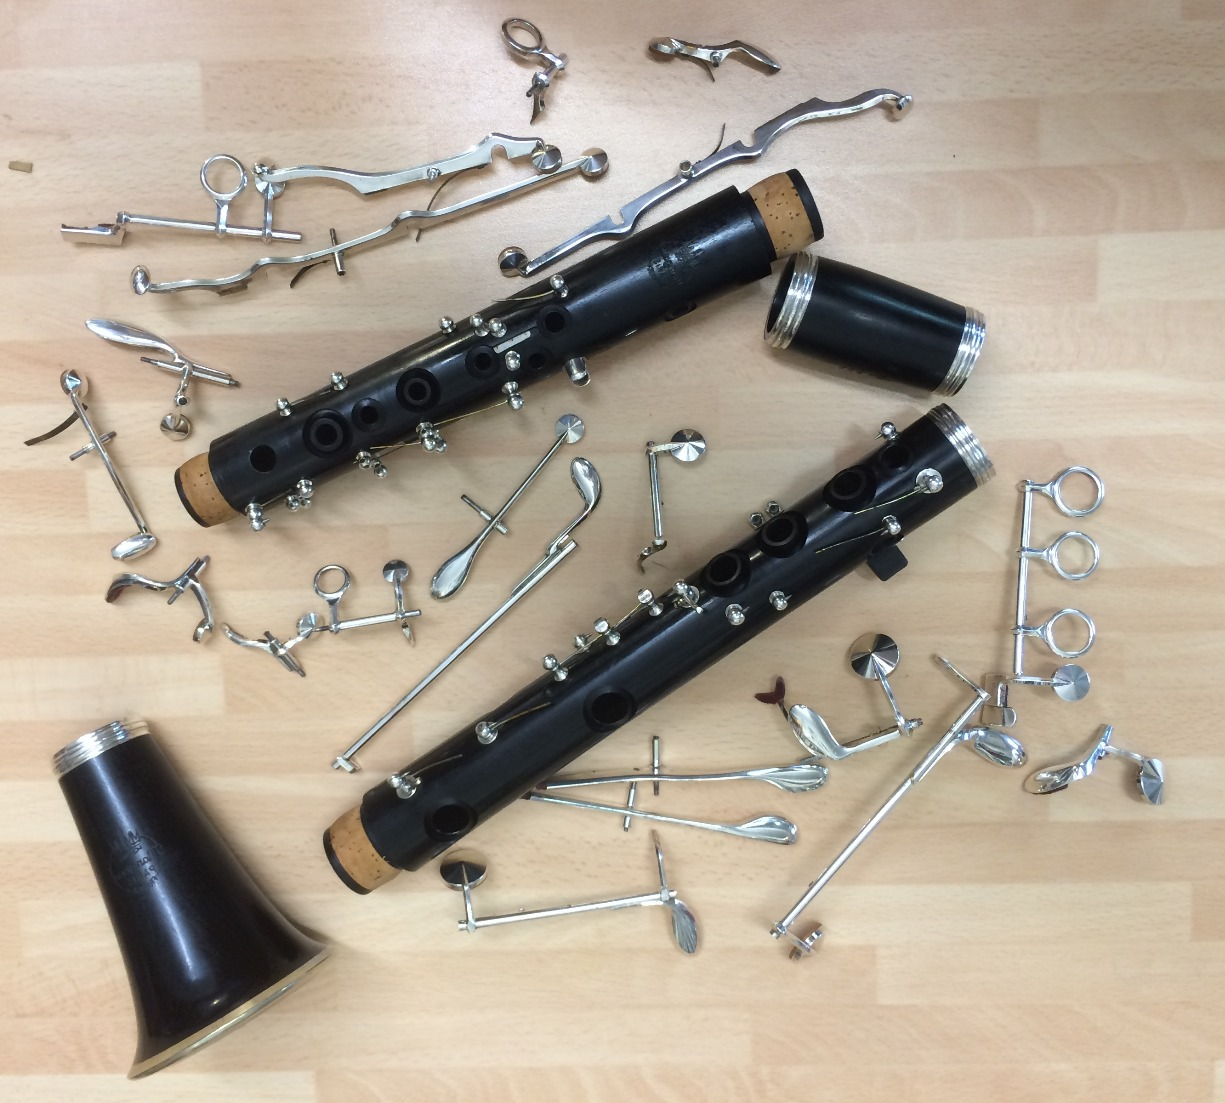 Clarinet Deconstruction